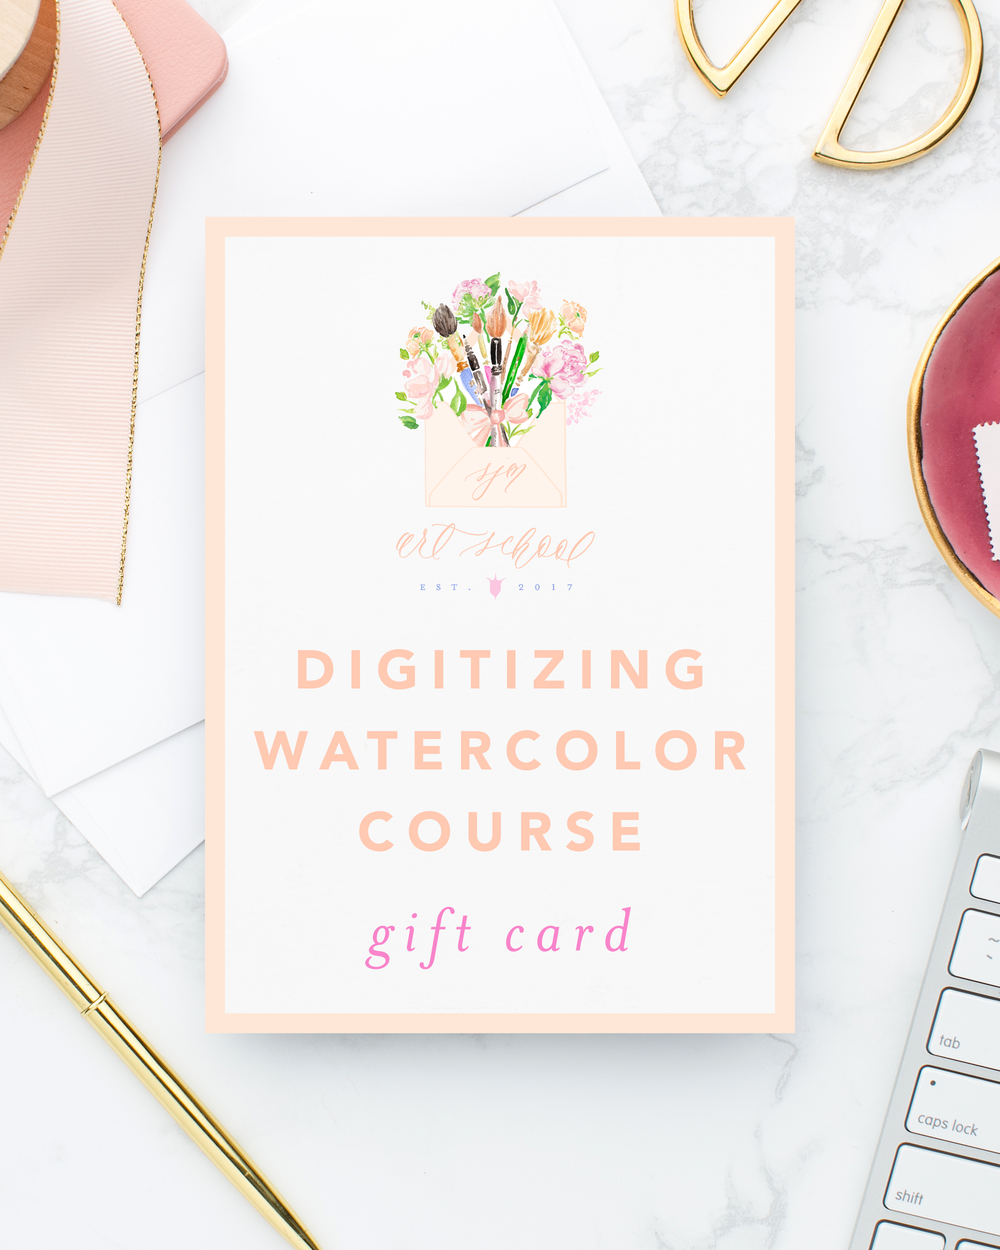 SJM Art School Digitizing Watercolors Online Course Gift Card